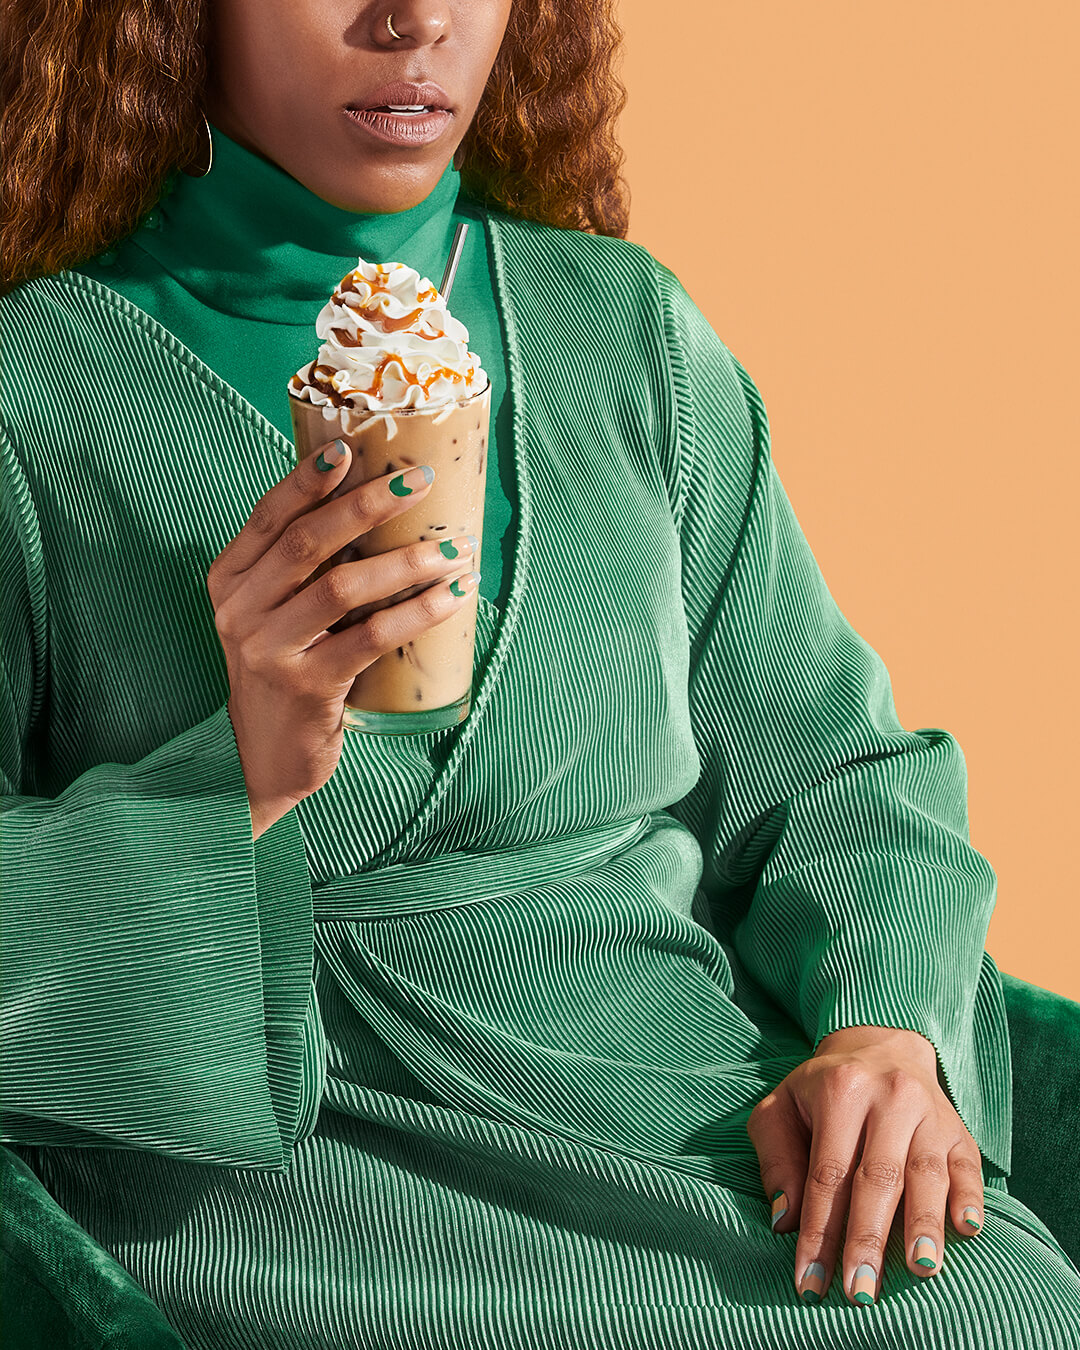 credits: photo- jenna gang, food styling- jen beauchesne, clothing- ross mcCallum, nail design- Ada Yeung, nail tech- michelle sun  description: conceptual still life of model drinking iced frappicino.